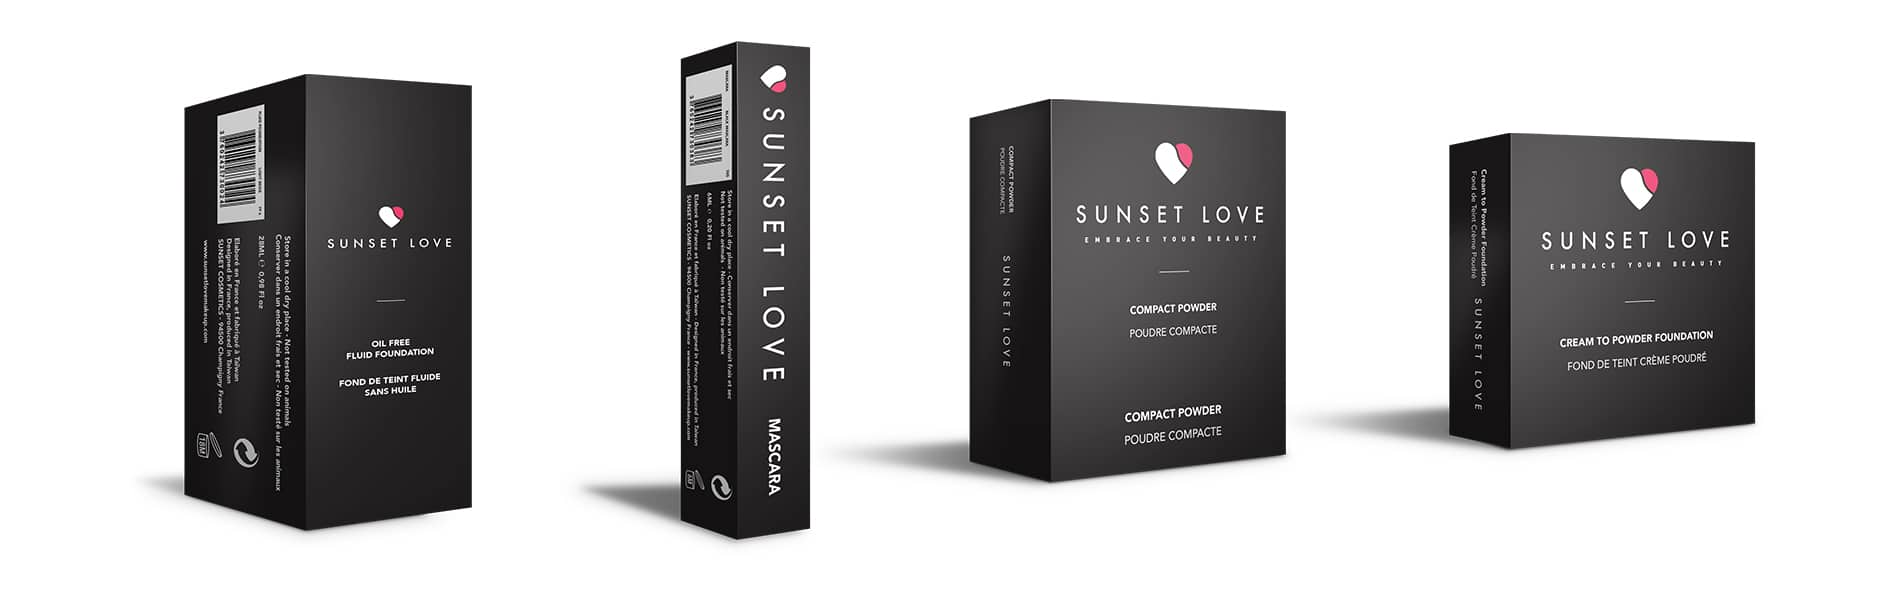 branding-cosmetic-sunset-love-3